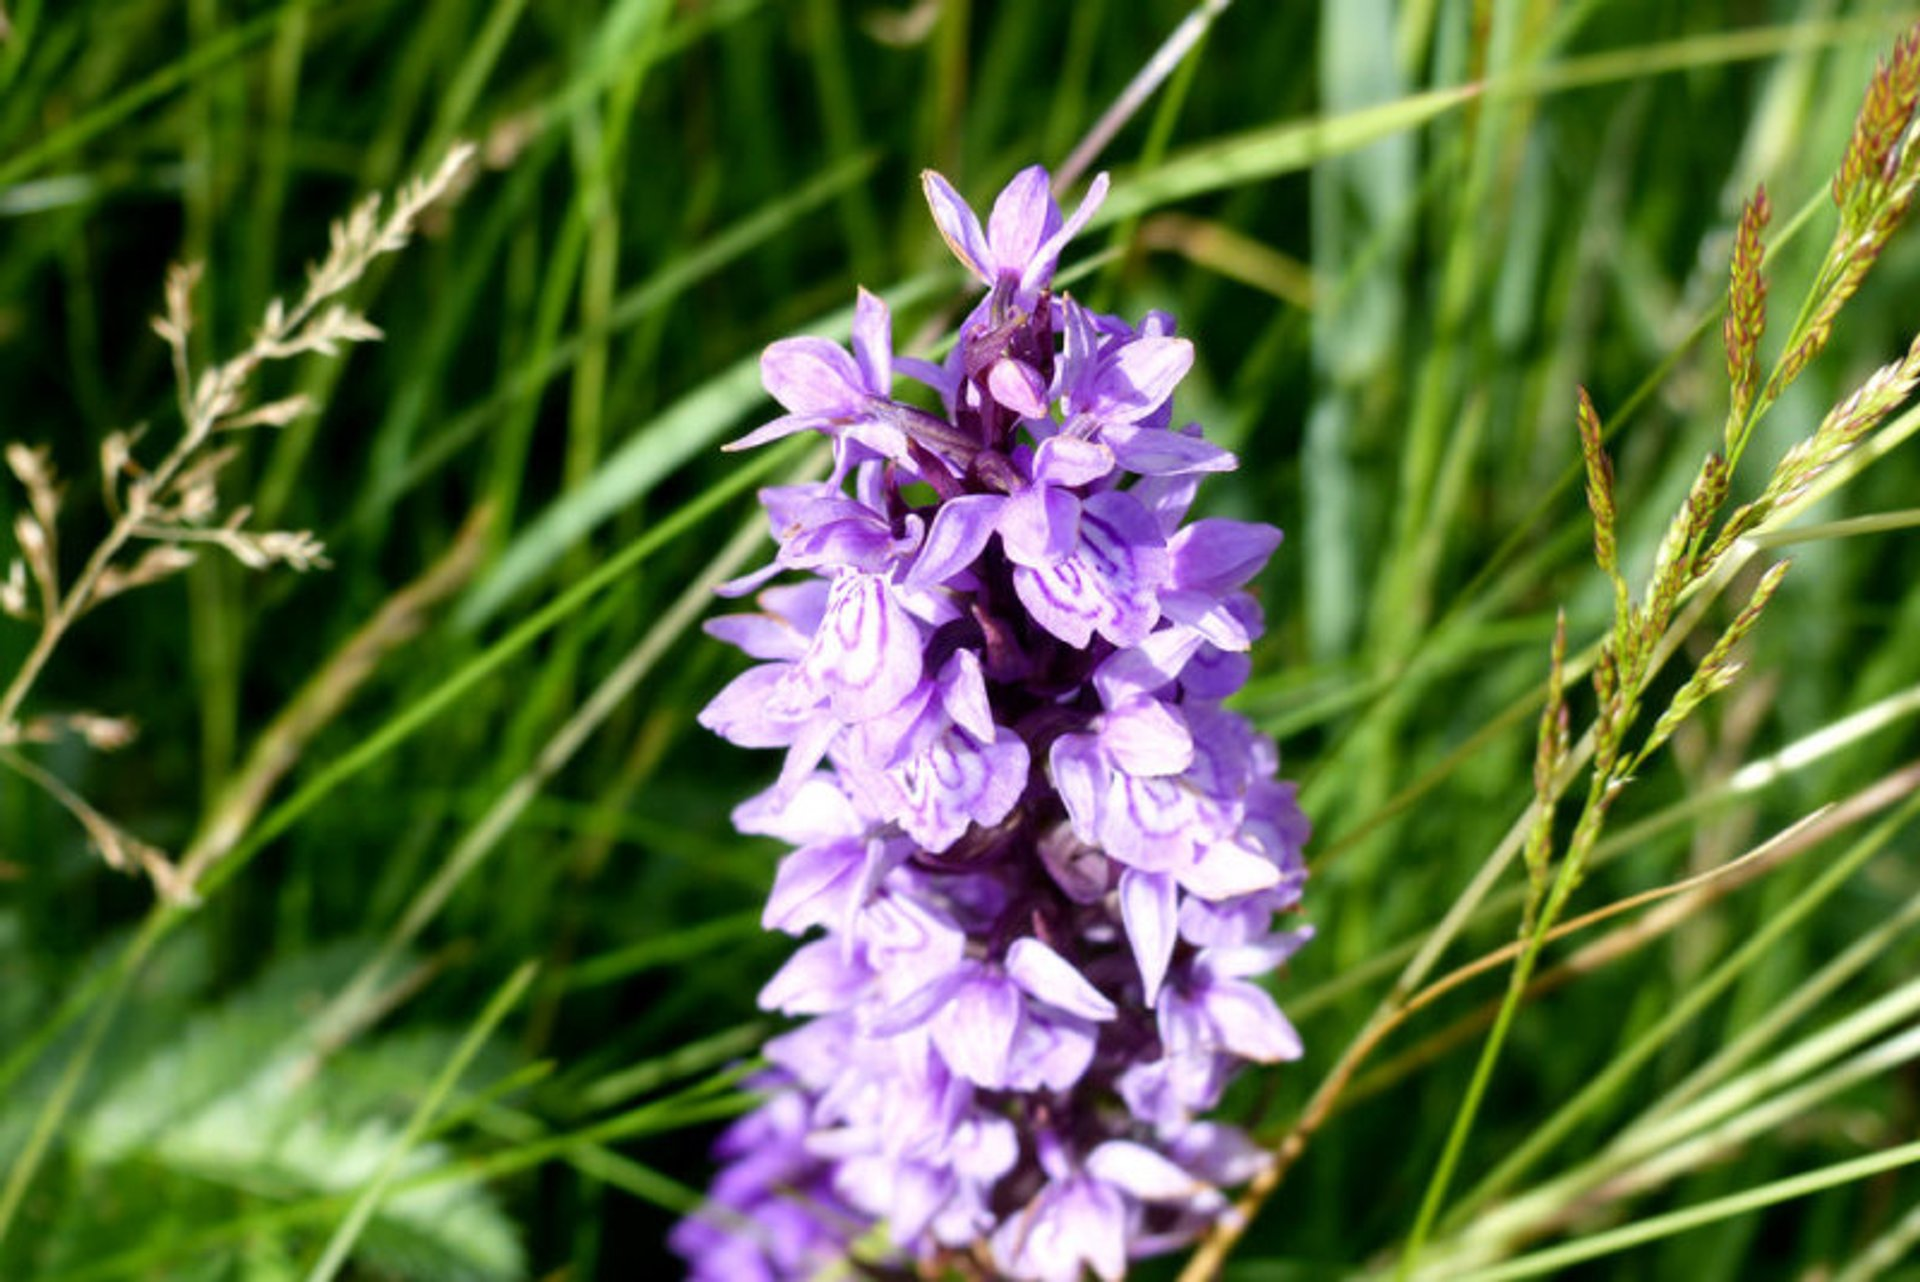 Orchids at  Lauwersmeer in The Netherlands 2020 - Best Time